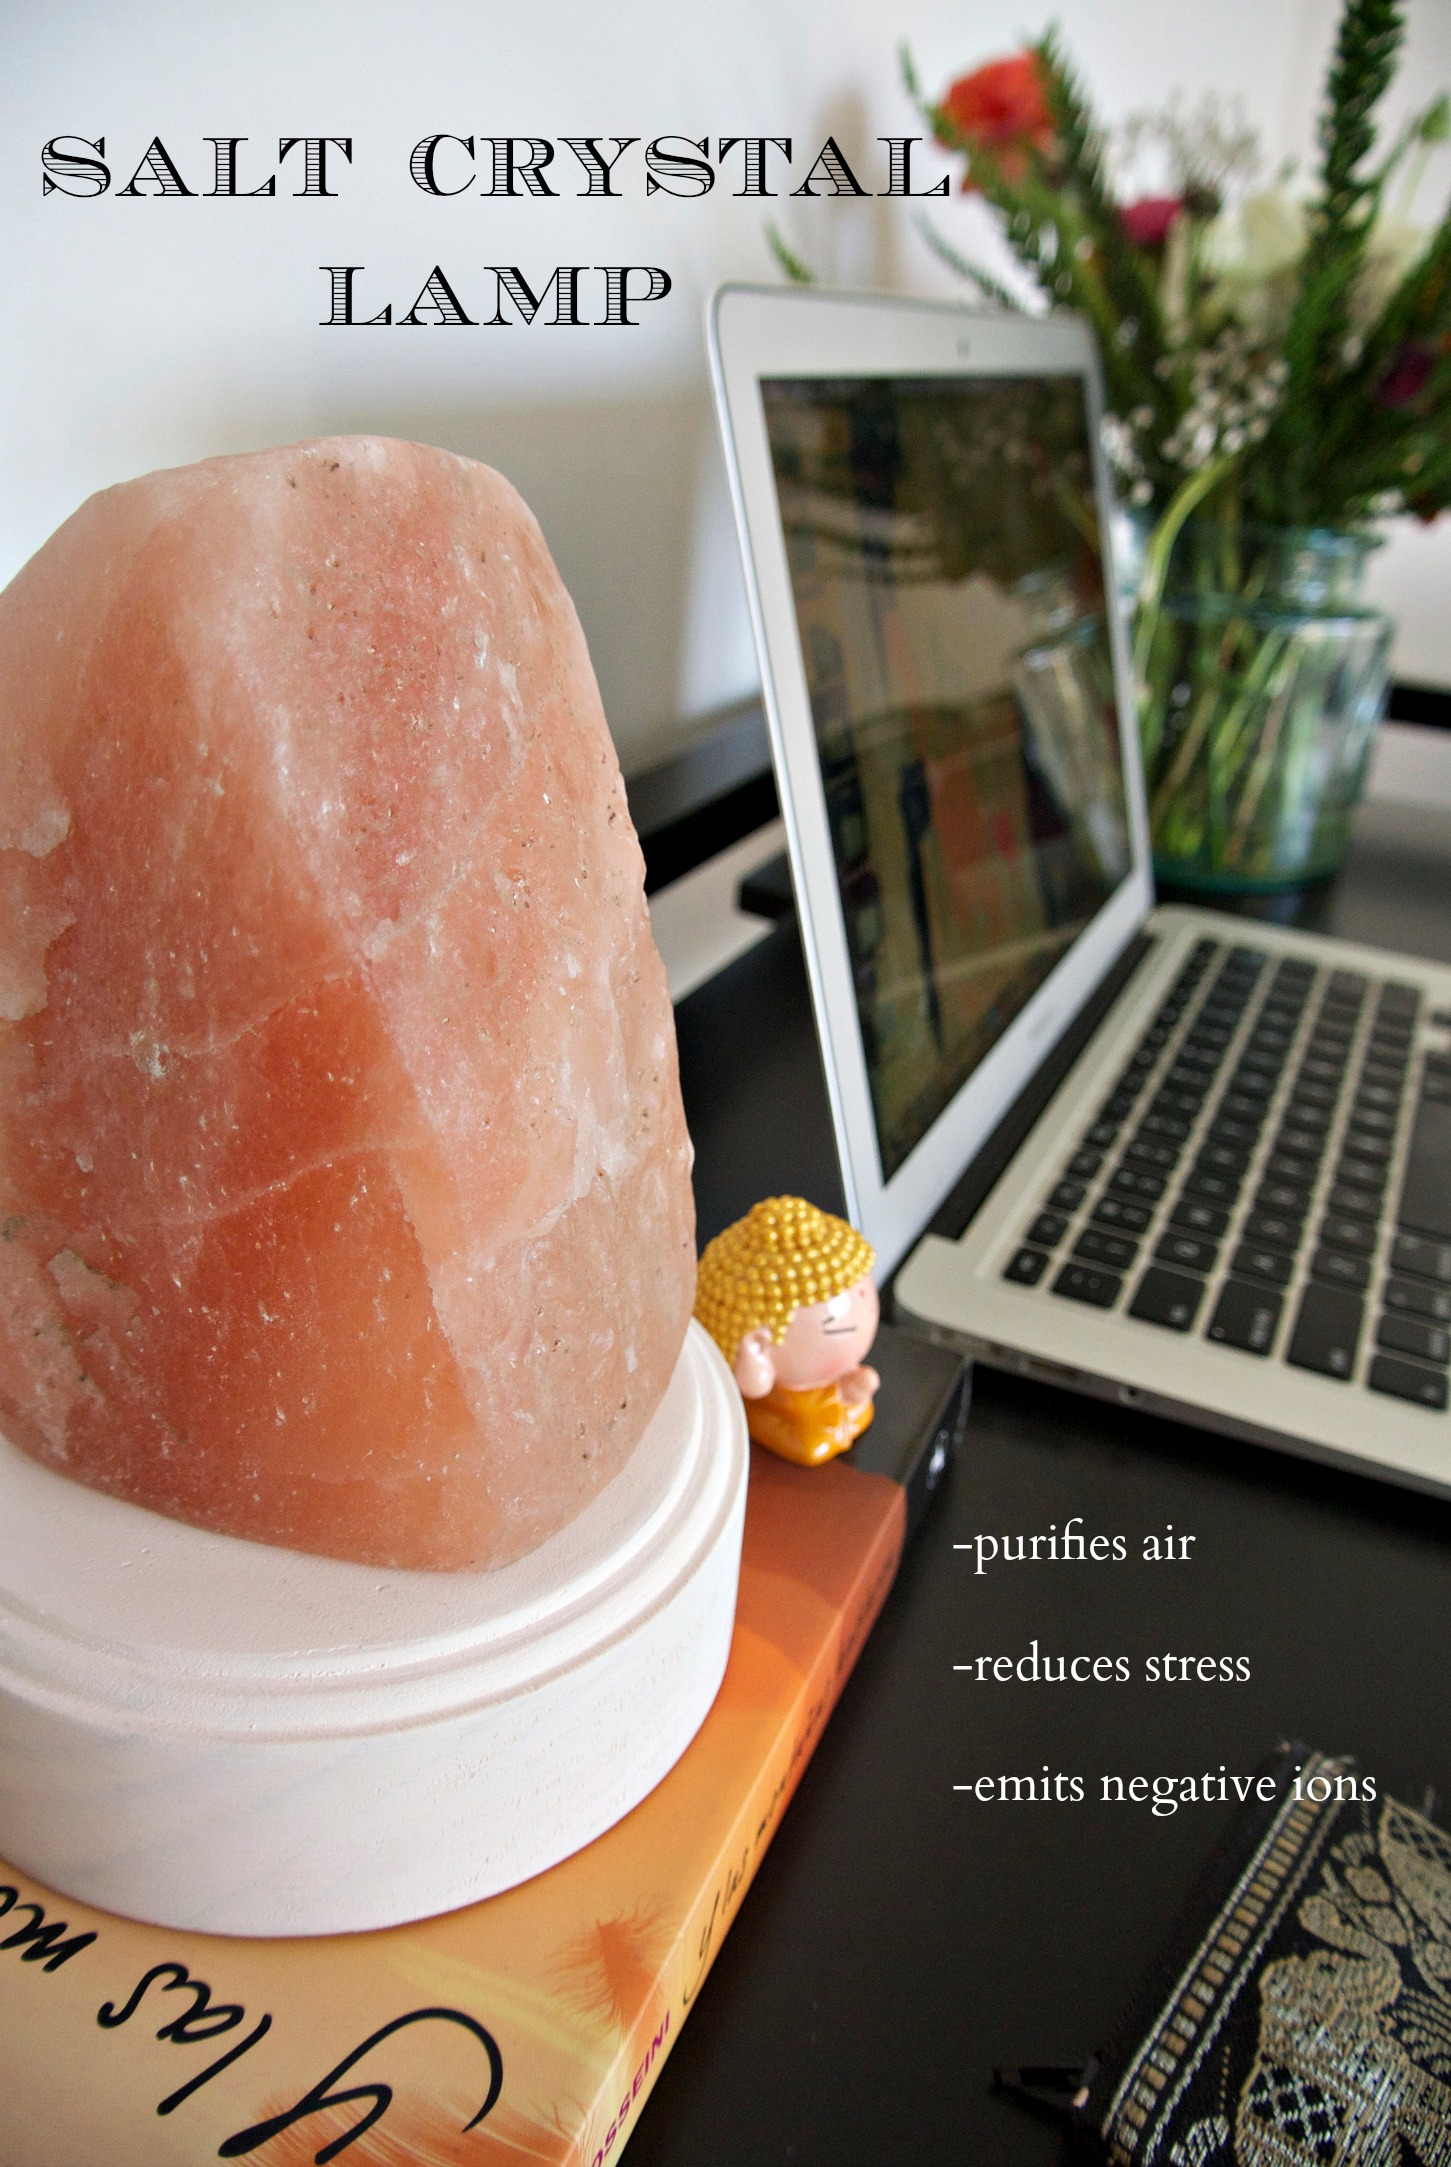 Himalayan Salt Lamps Myth : Amazing Salt Rock Lamp Benefits Wallpaper Home Gallery Image and Wallpaper